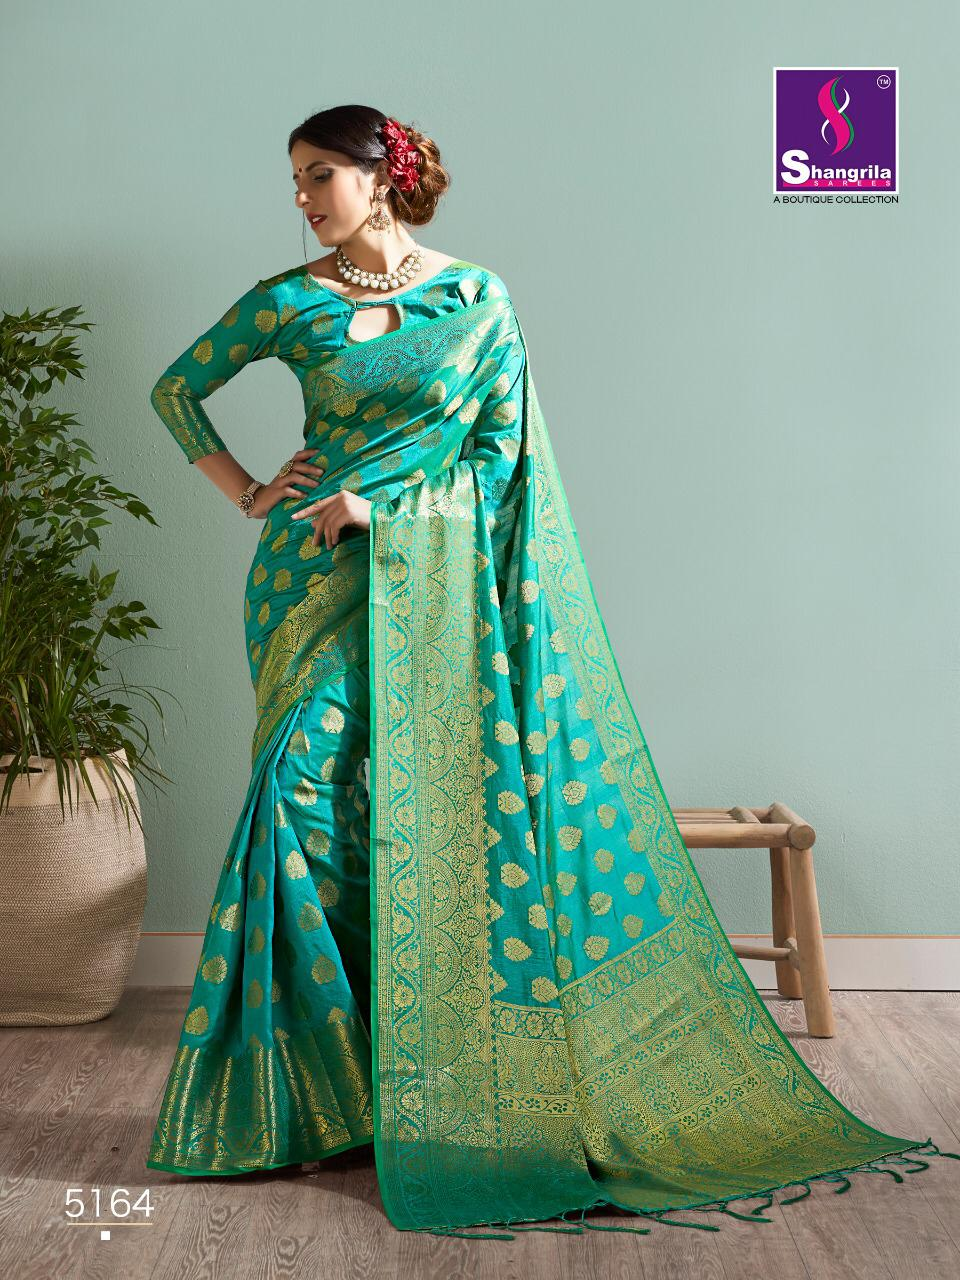 Shangrila Vasansi Silk 2 collection 9